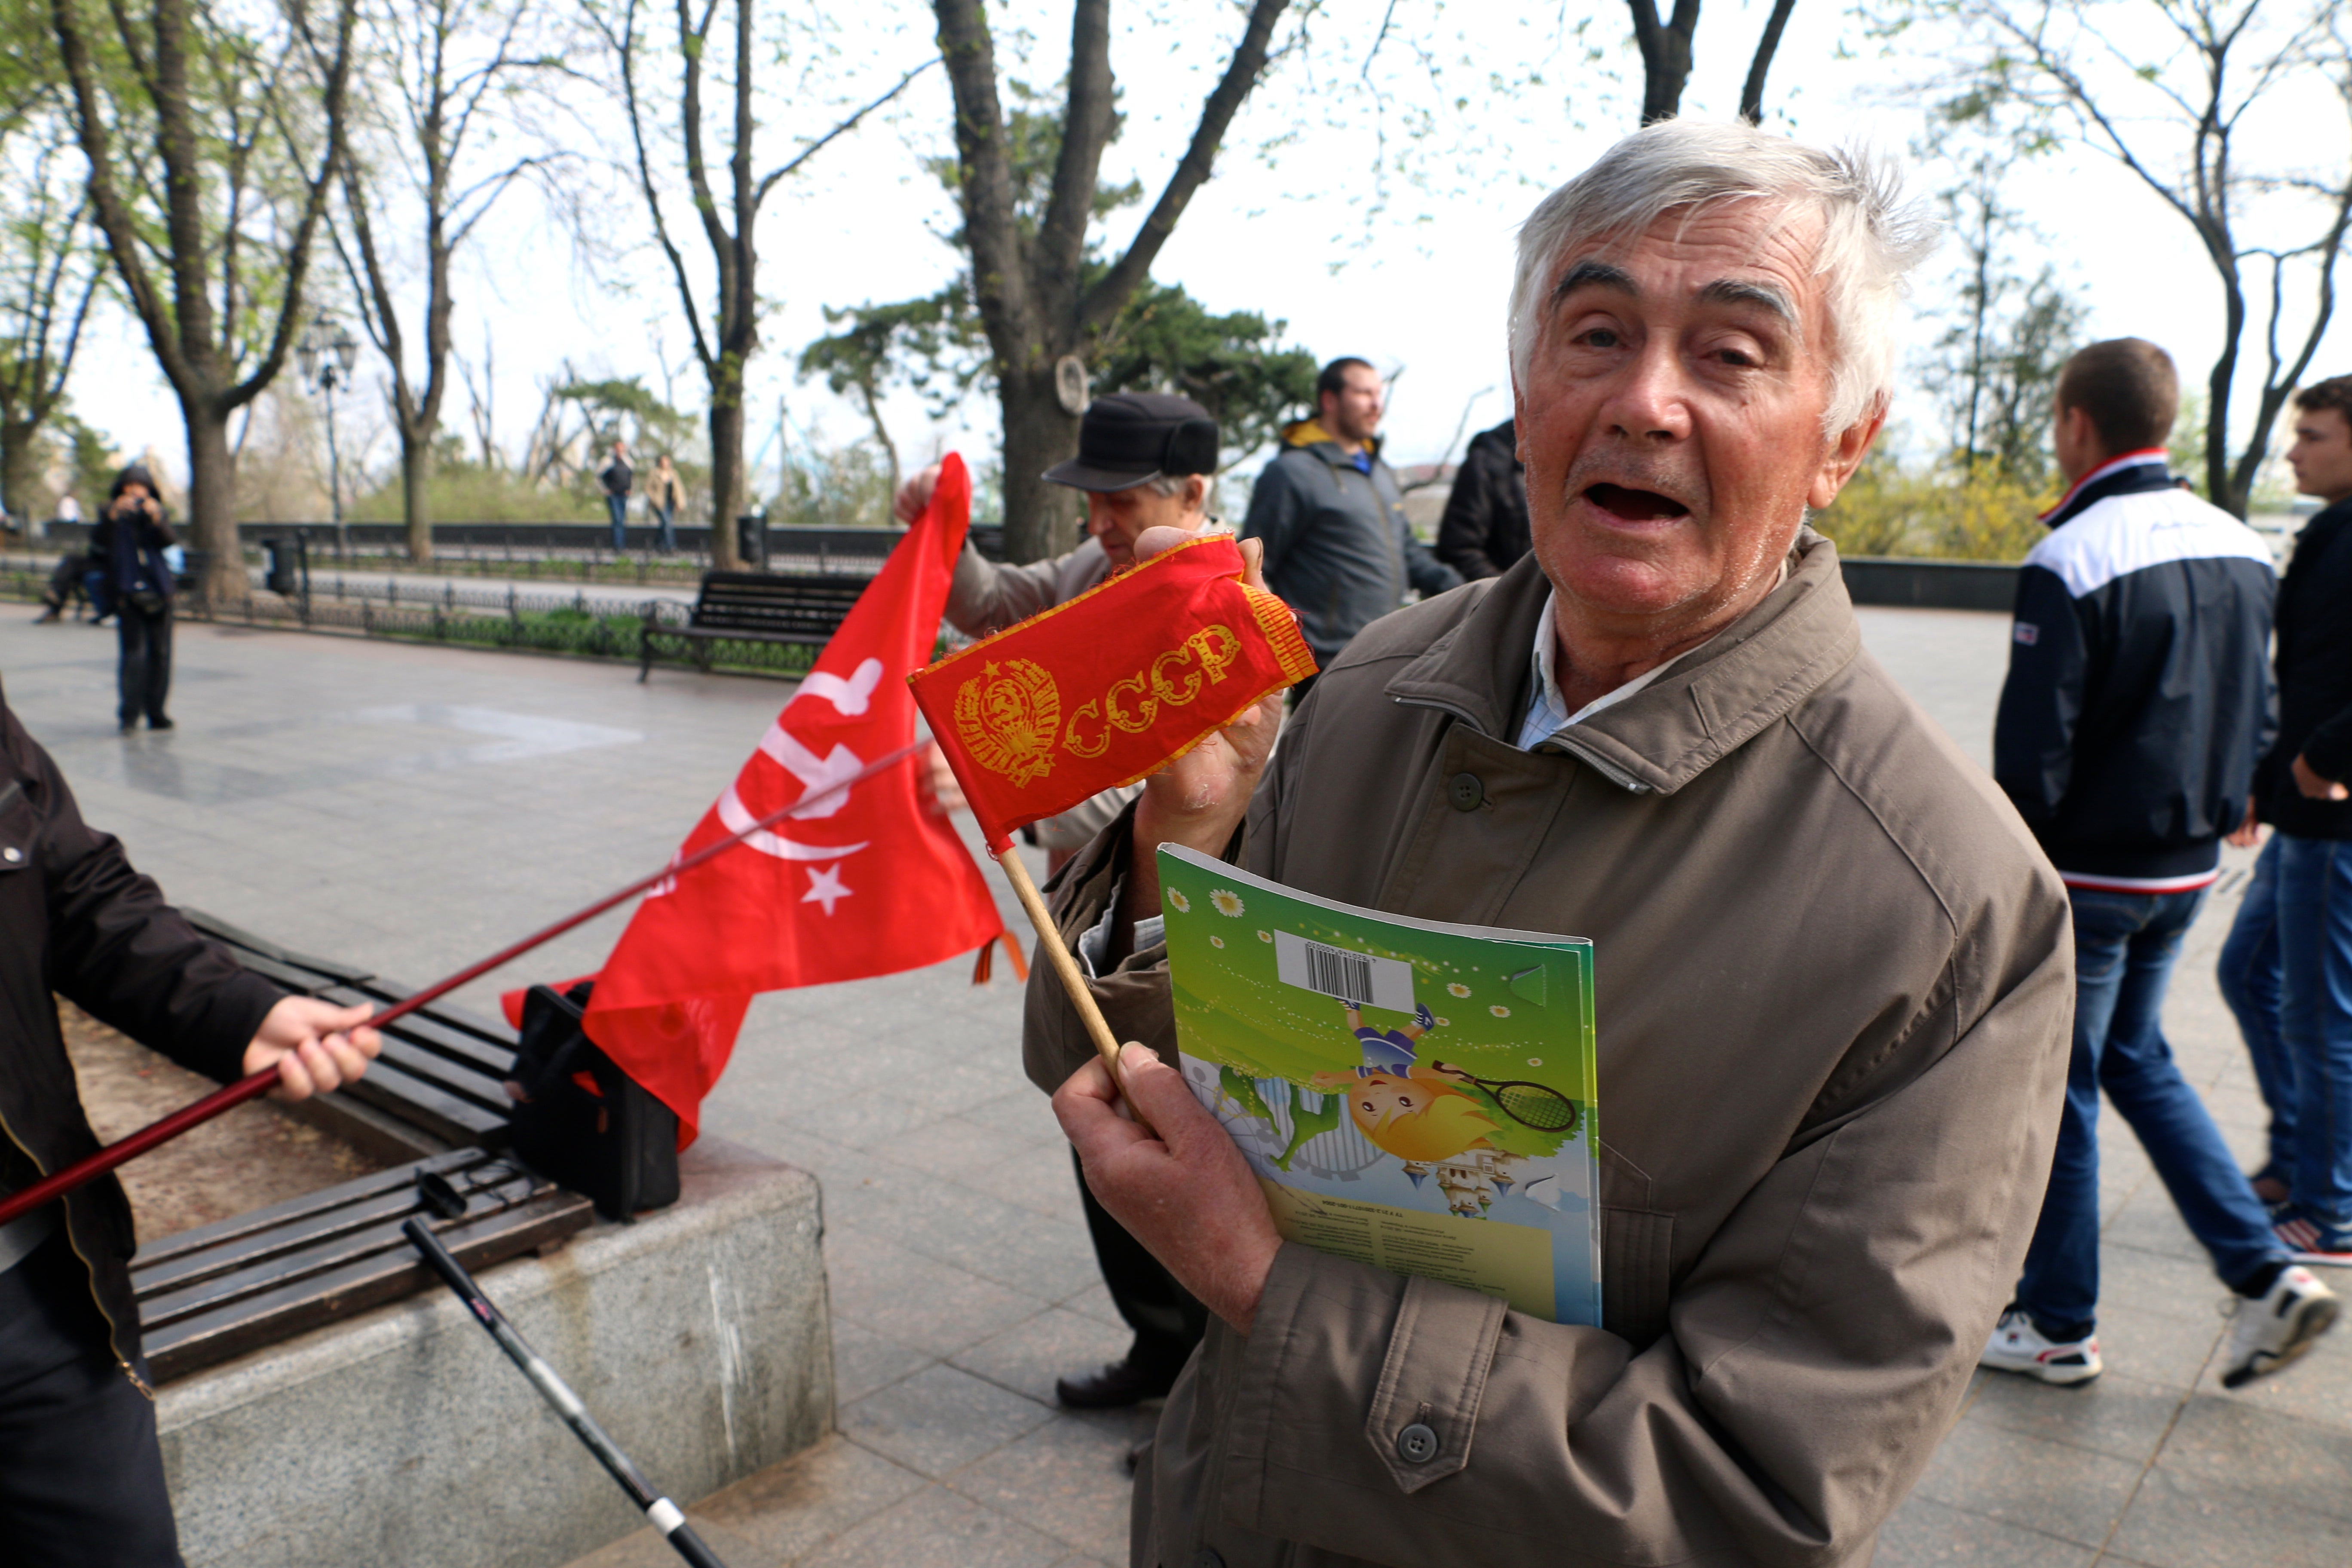 A Communist Party member with a Soviet flag in Odessa, Ukraine. (Photo: Nolan Peterson/The Daily Signal)